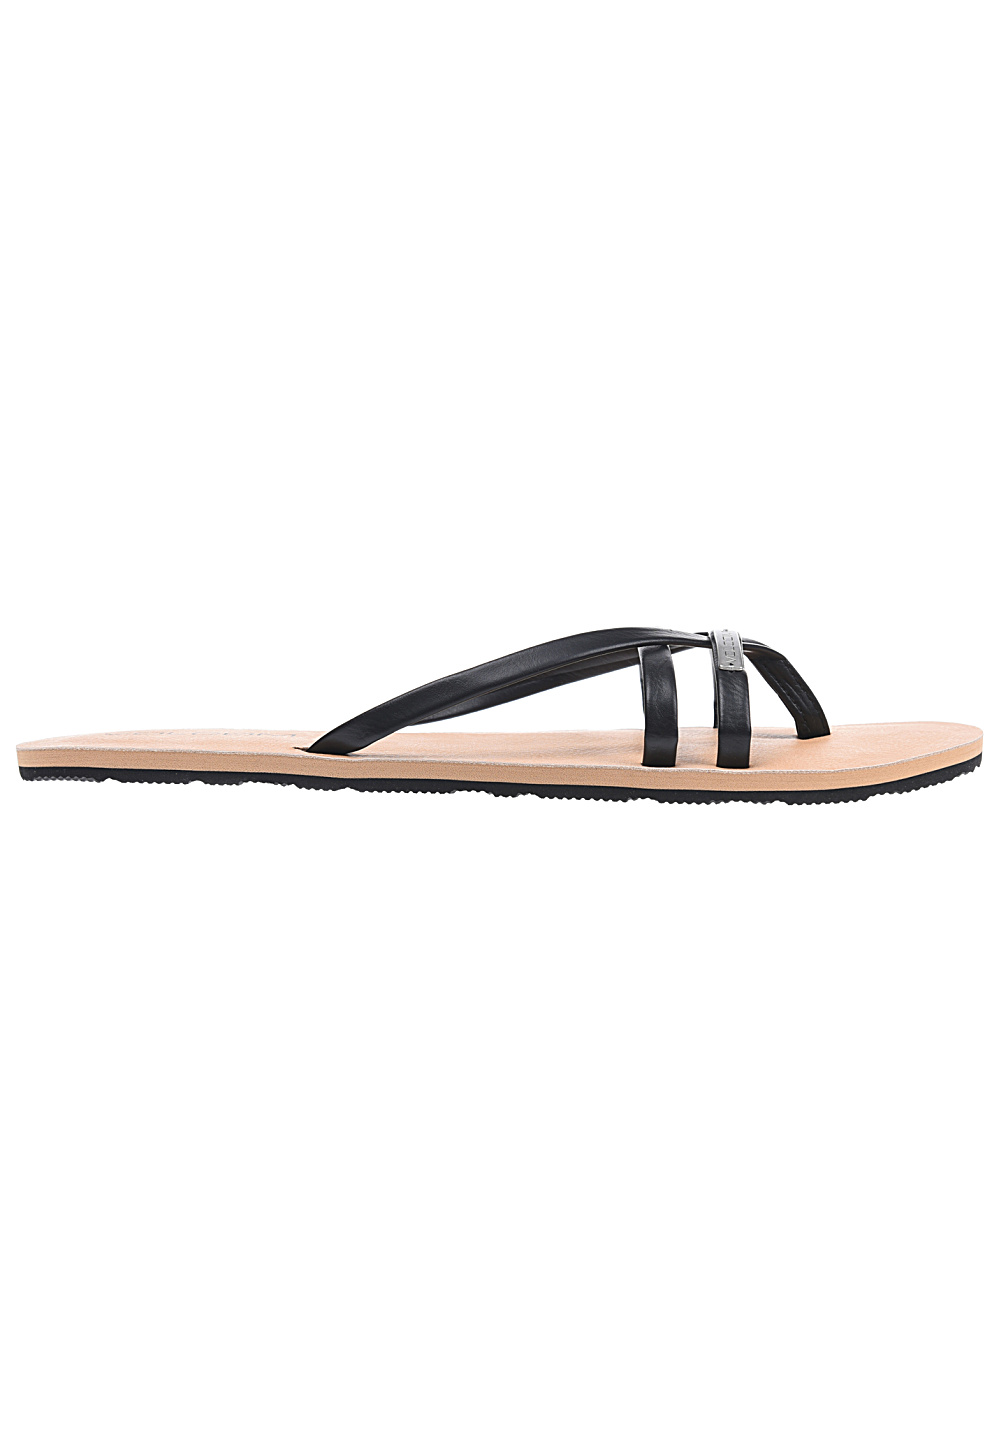 0c9508a6bb570d ... Volcom Lookout 2 - Sandals for Women - Black. Back to Overview. 1  2   3. Previous. Next